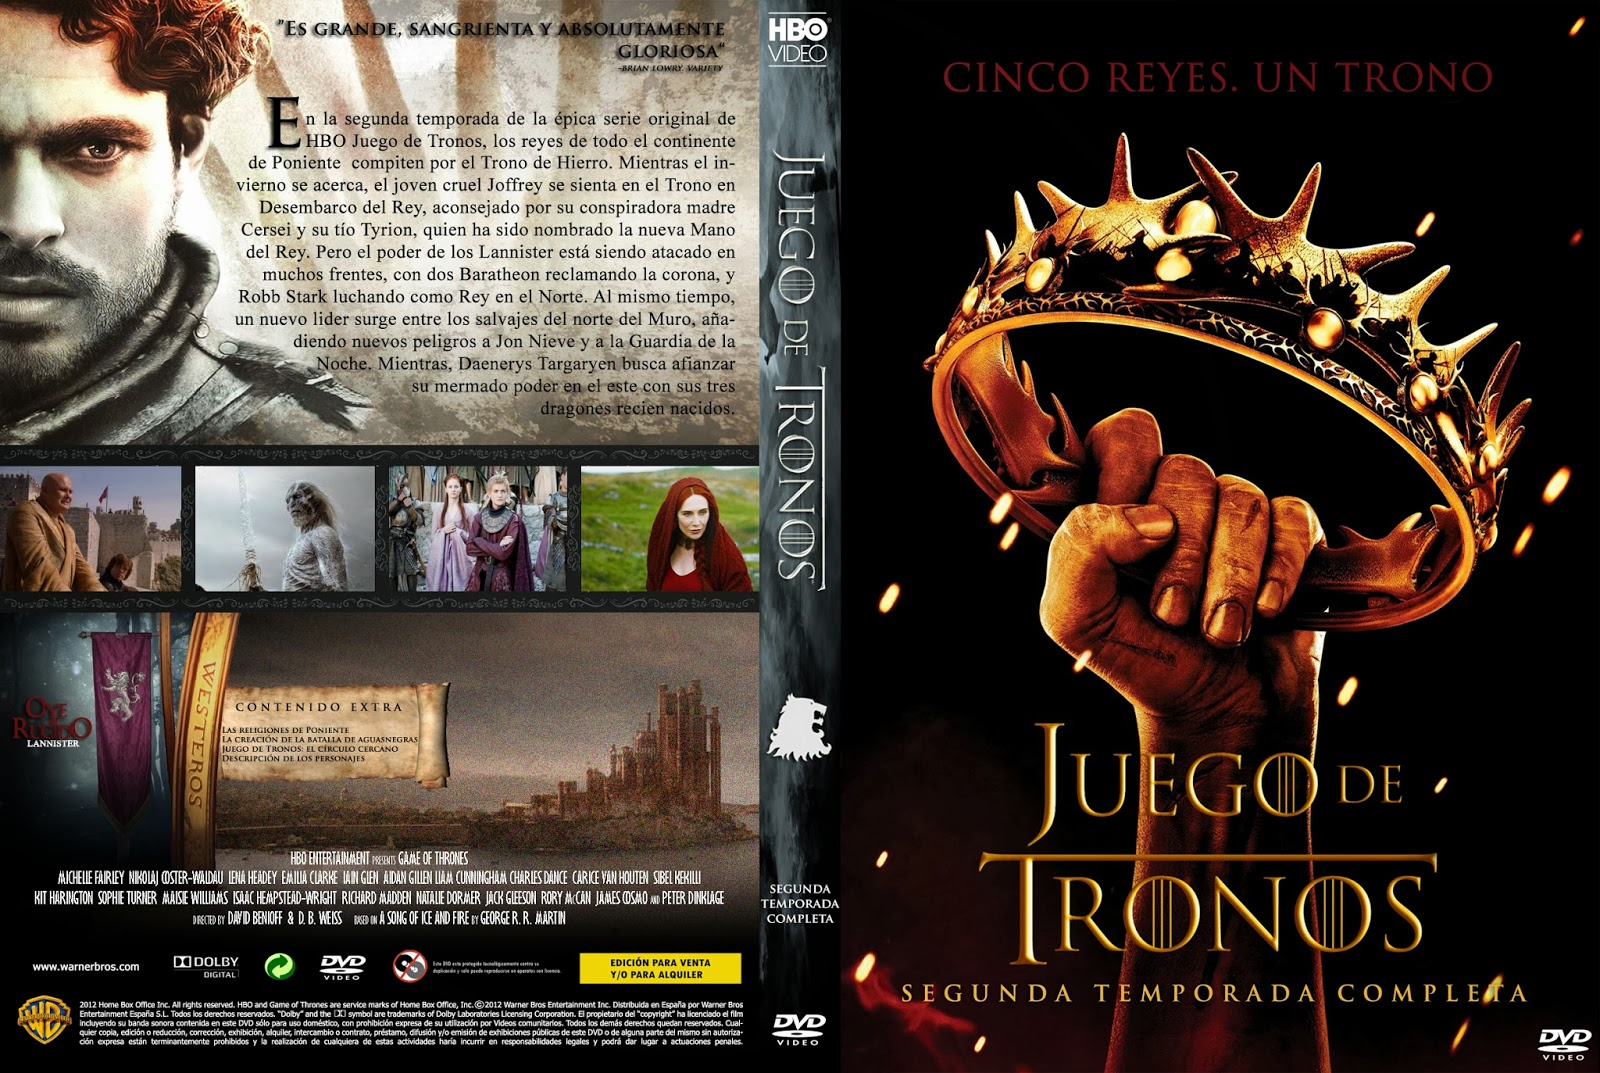 Game of Thrones juego de tronos 2 temporada